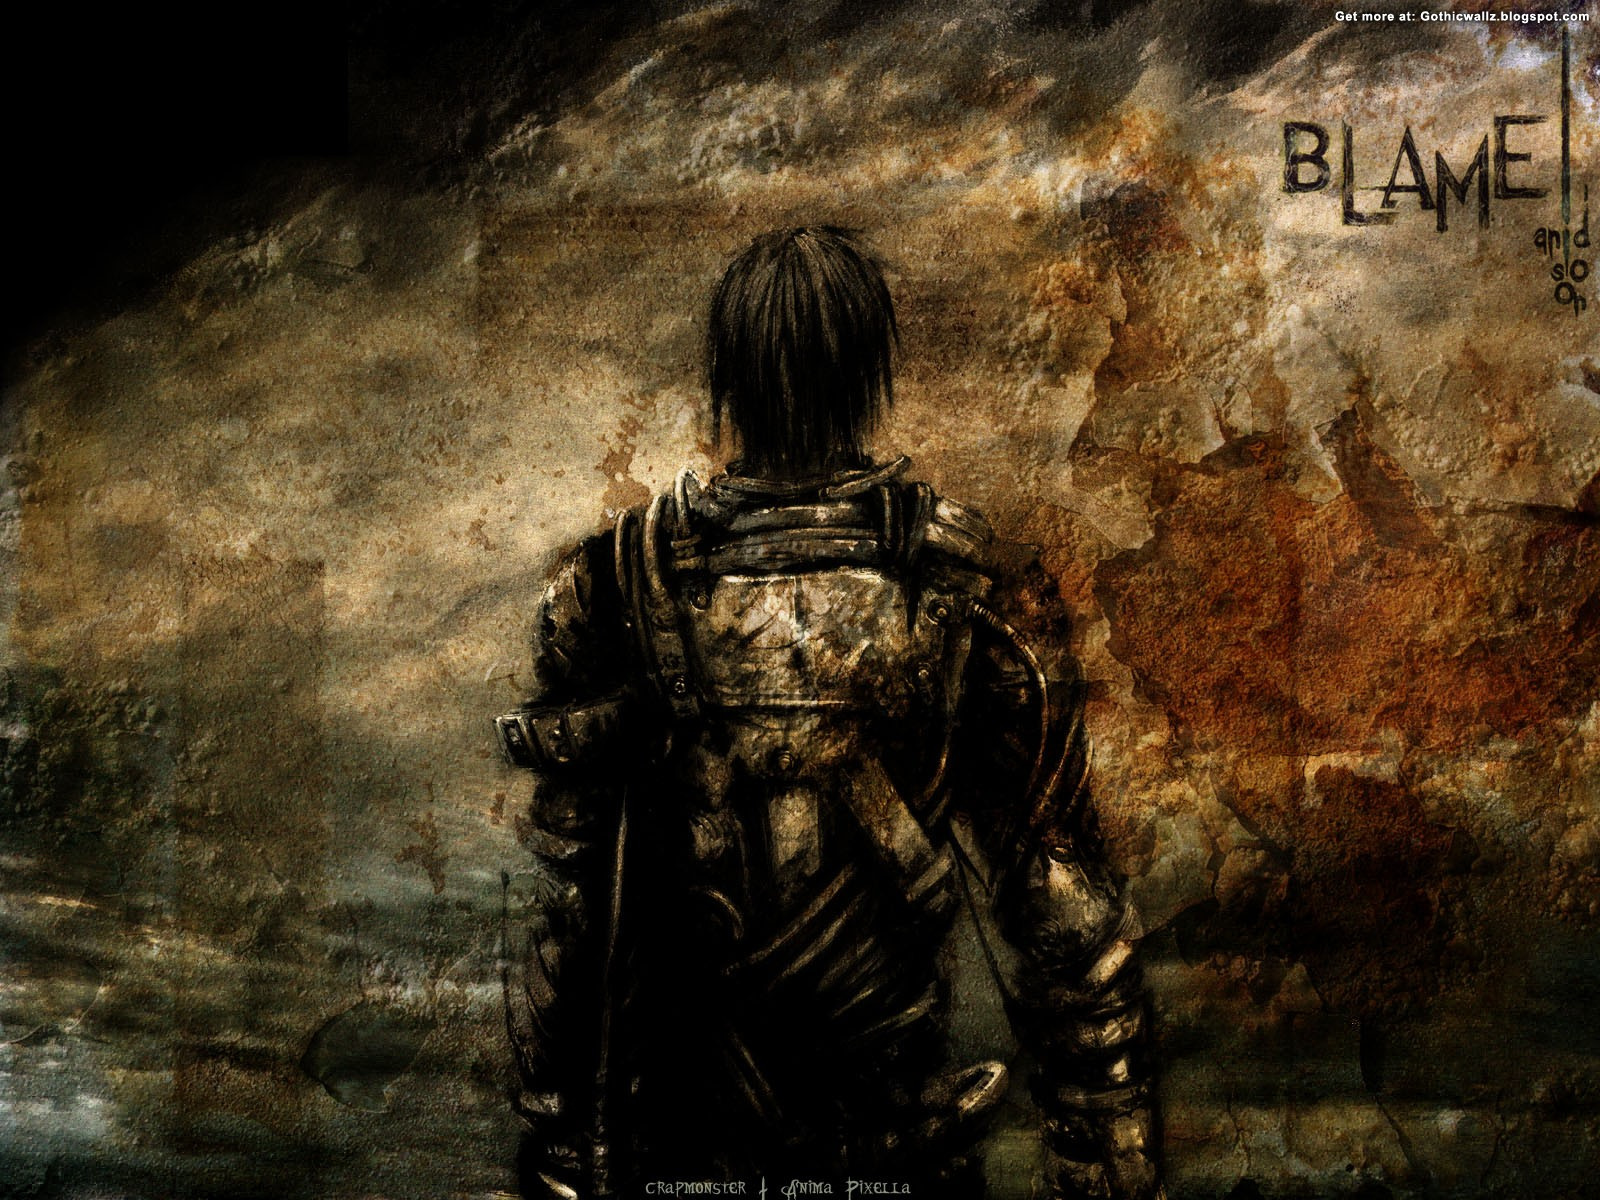 Blame-And-So-On | Gothic Wallpaper Download